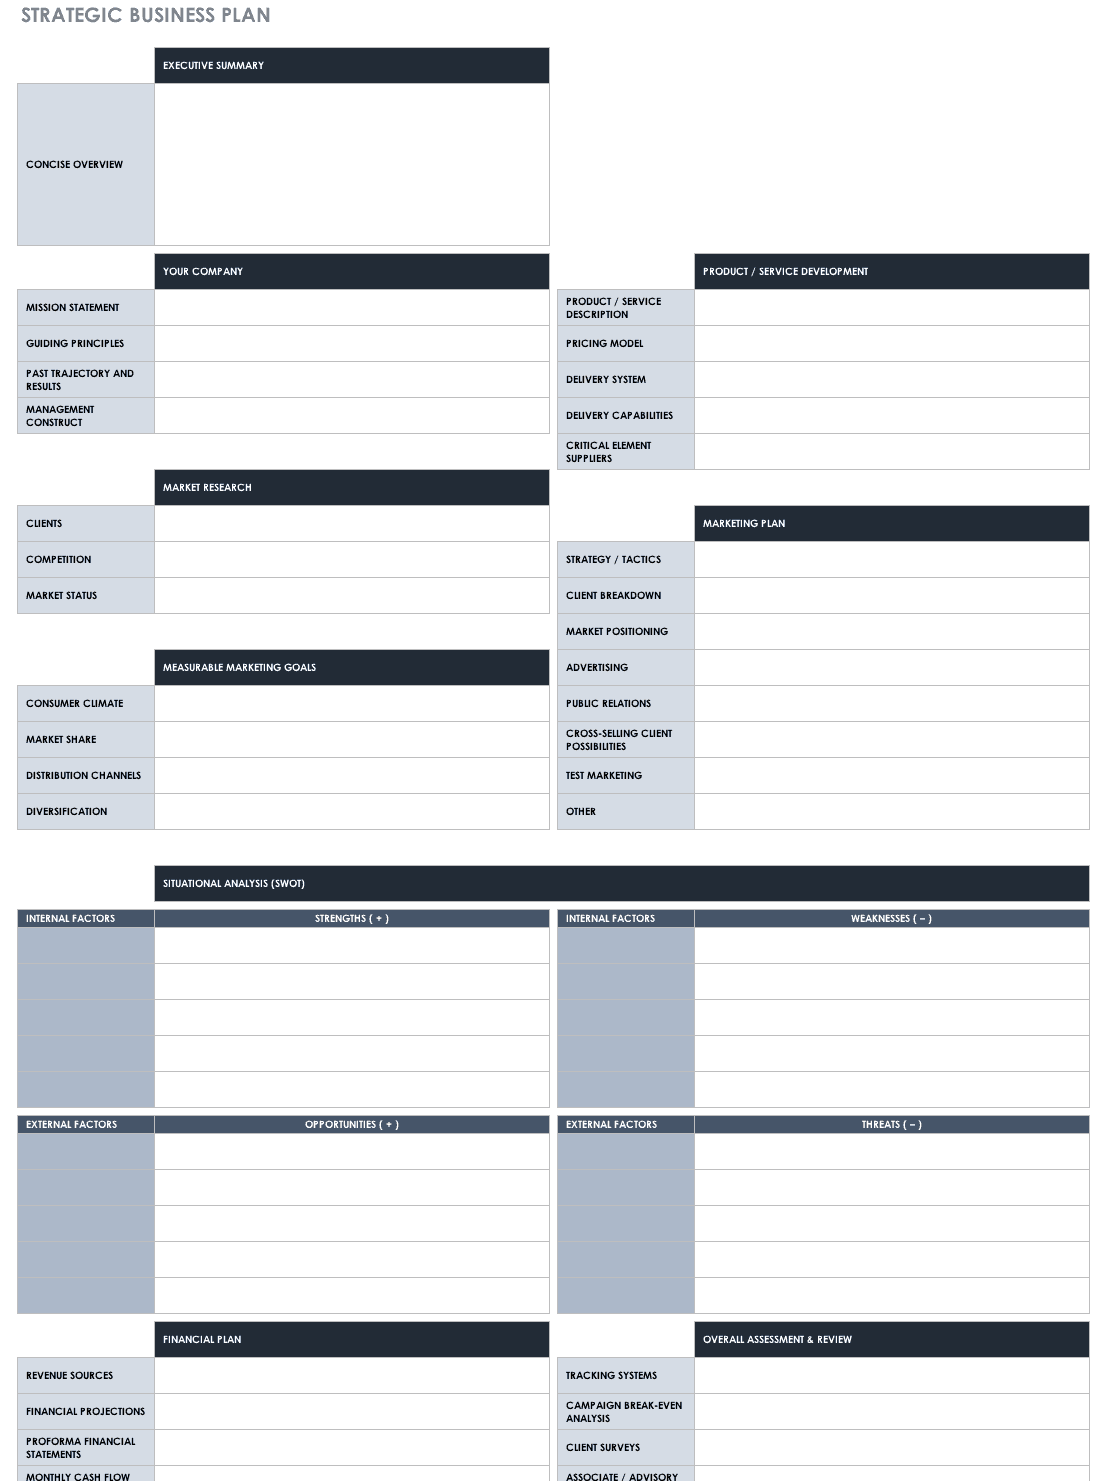 strategic business plan template